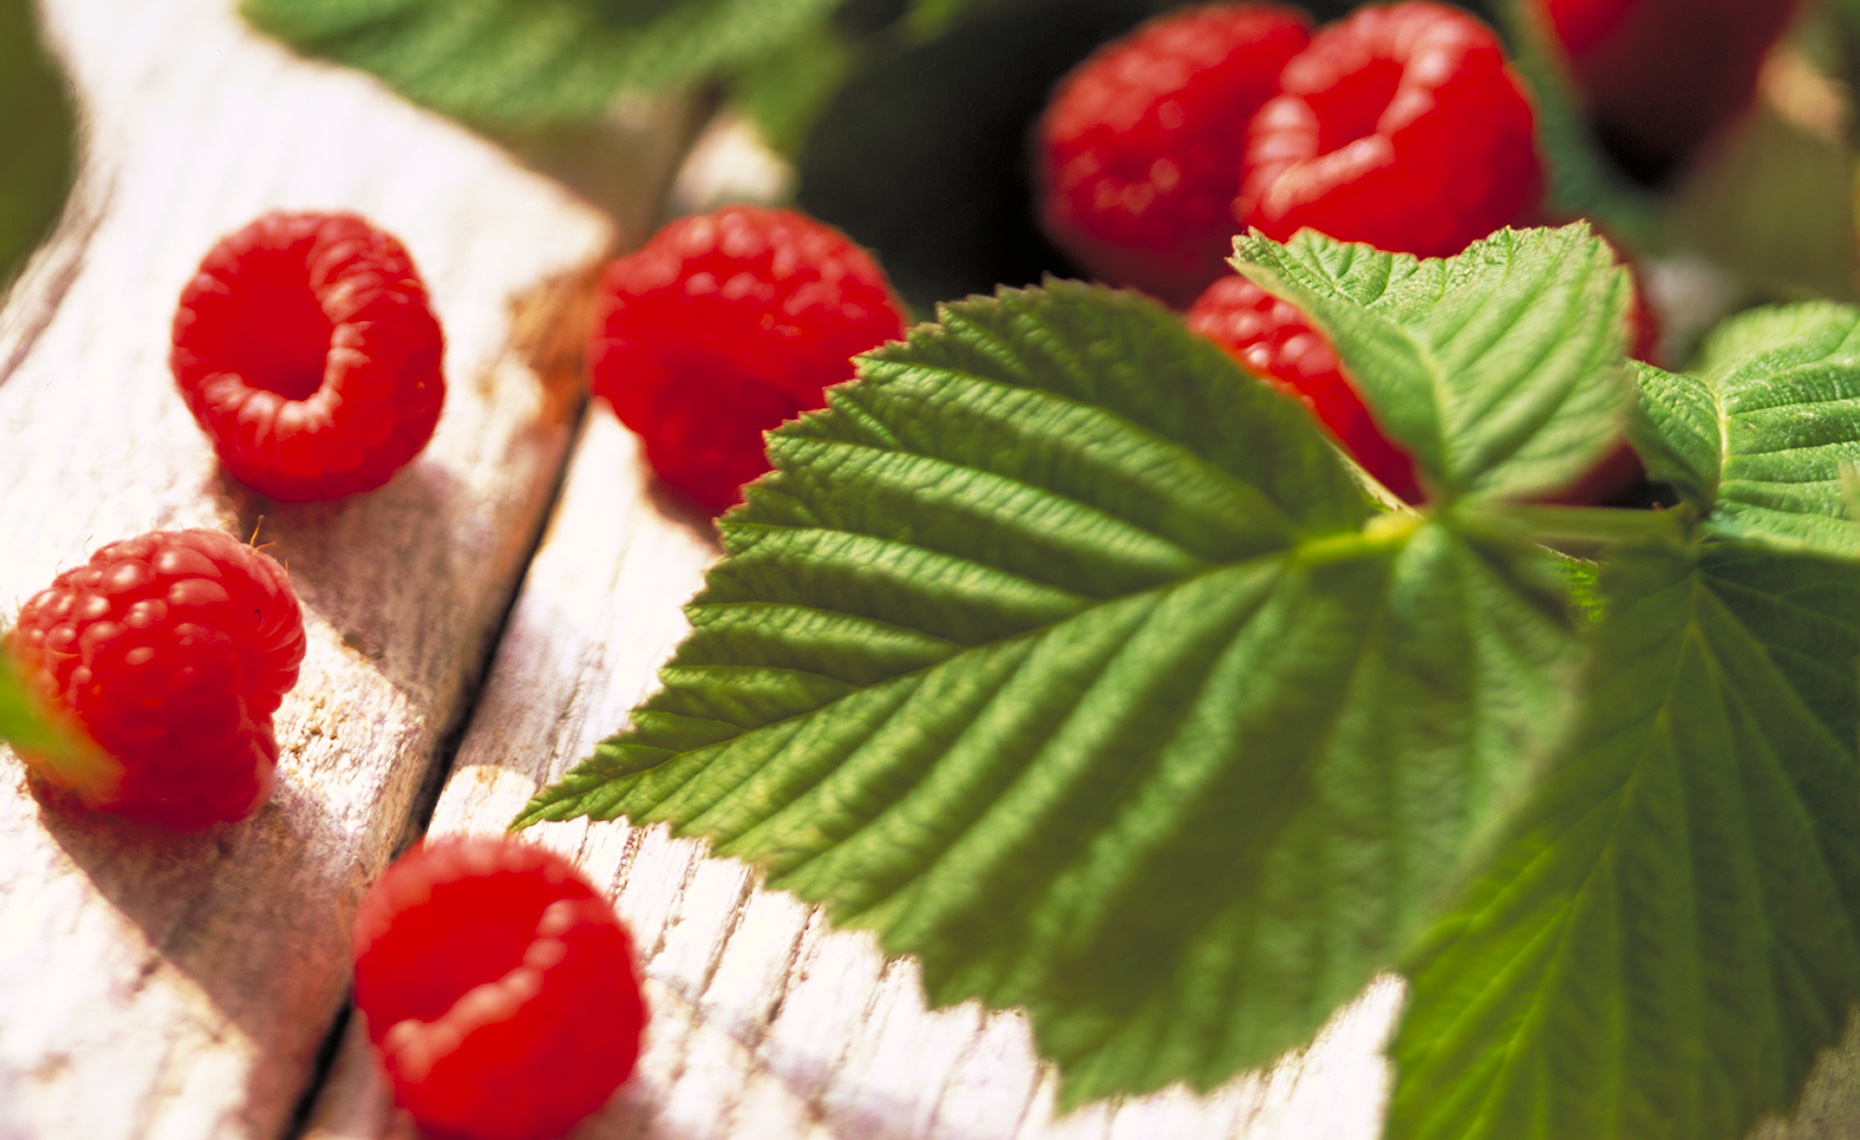 Food Photographer, Vegetable photography, Fruit photography | Pohuski Studios,  Fresh Raspberries